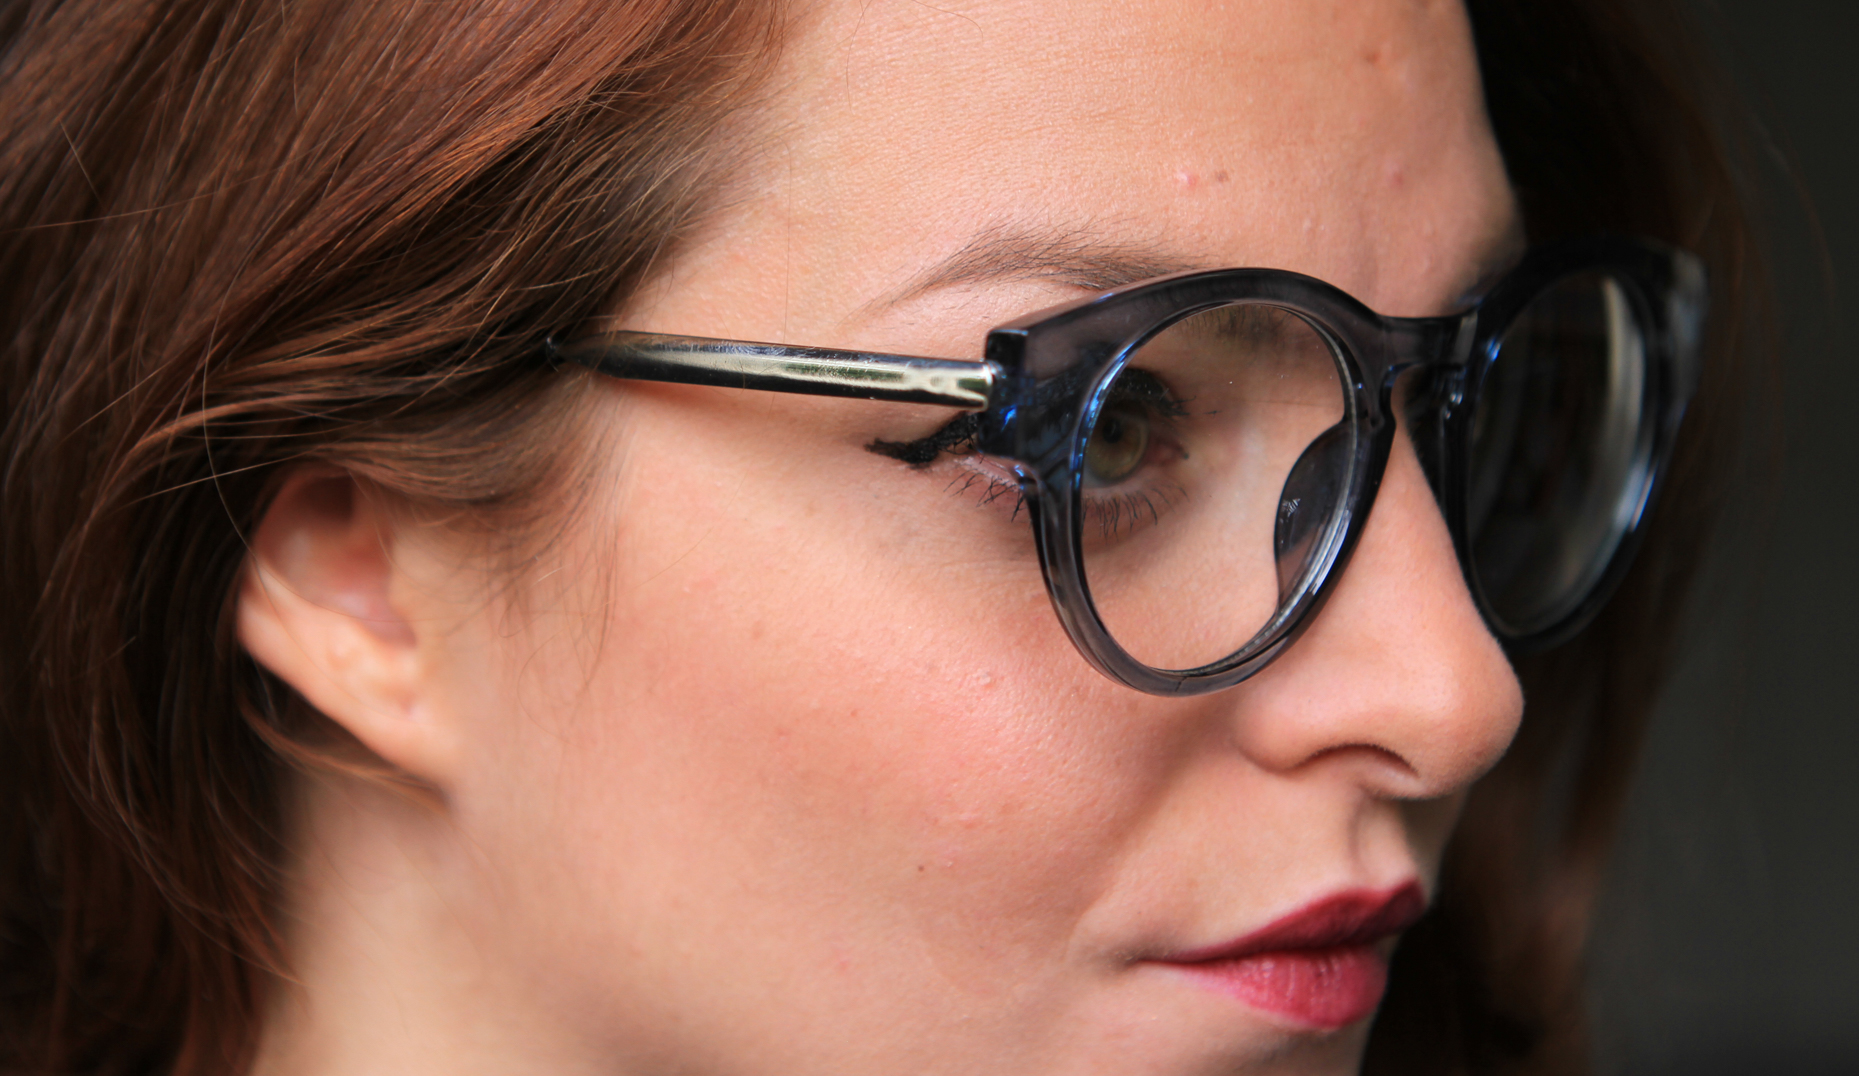 Jeepers Peepers - JP0202 glasses